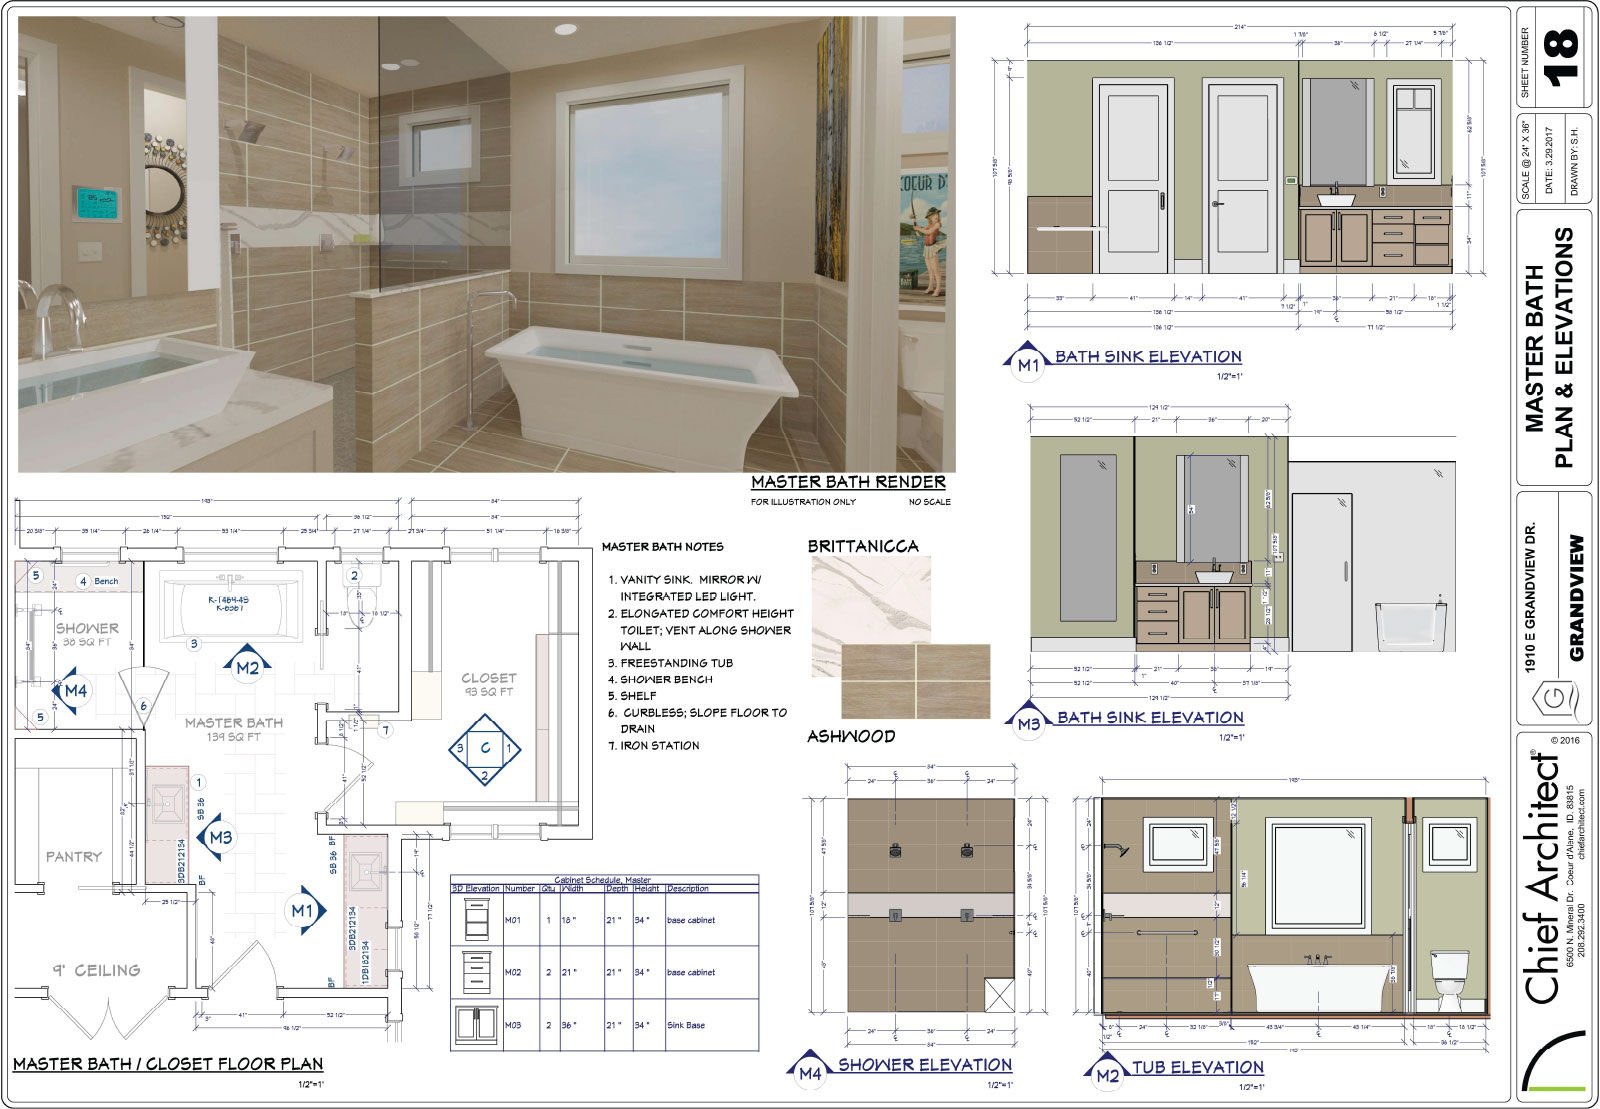 Master bath remodeling 3D rendering, floorplan, wall elevations, and material selections